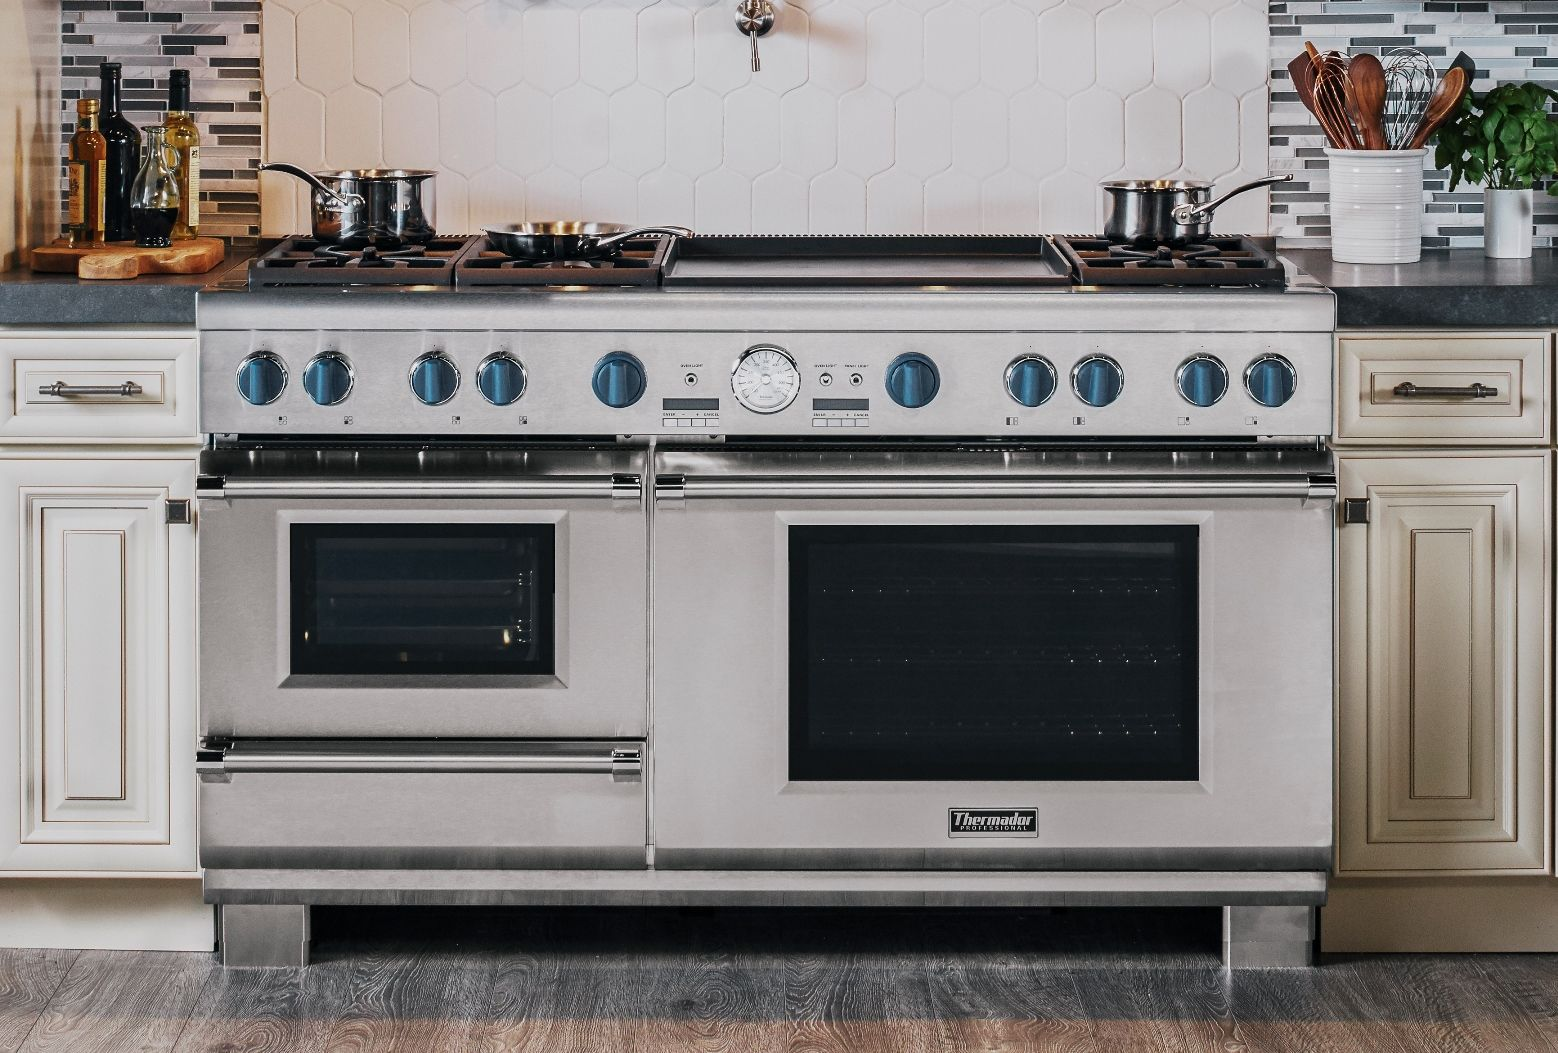 Healthy cooking with the 60 Pro Grand Steam Range by